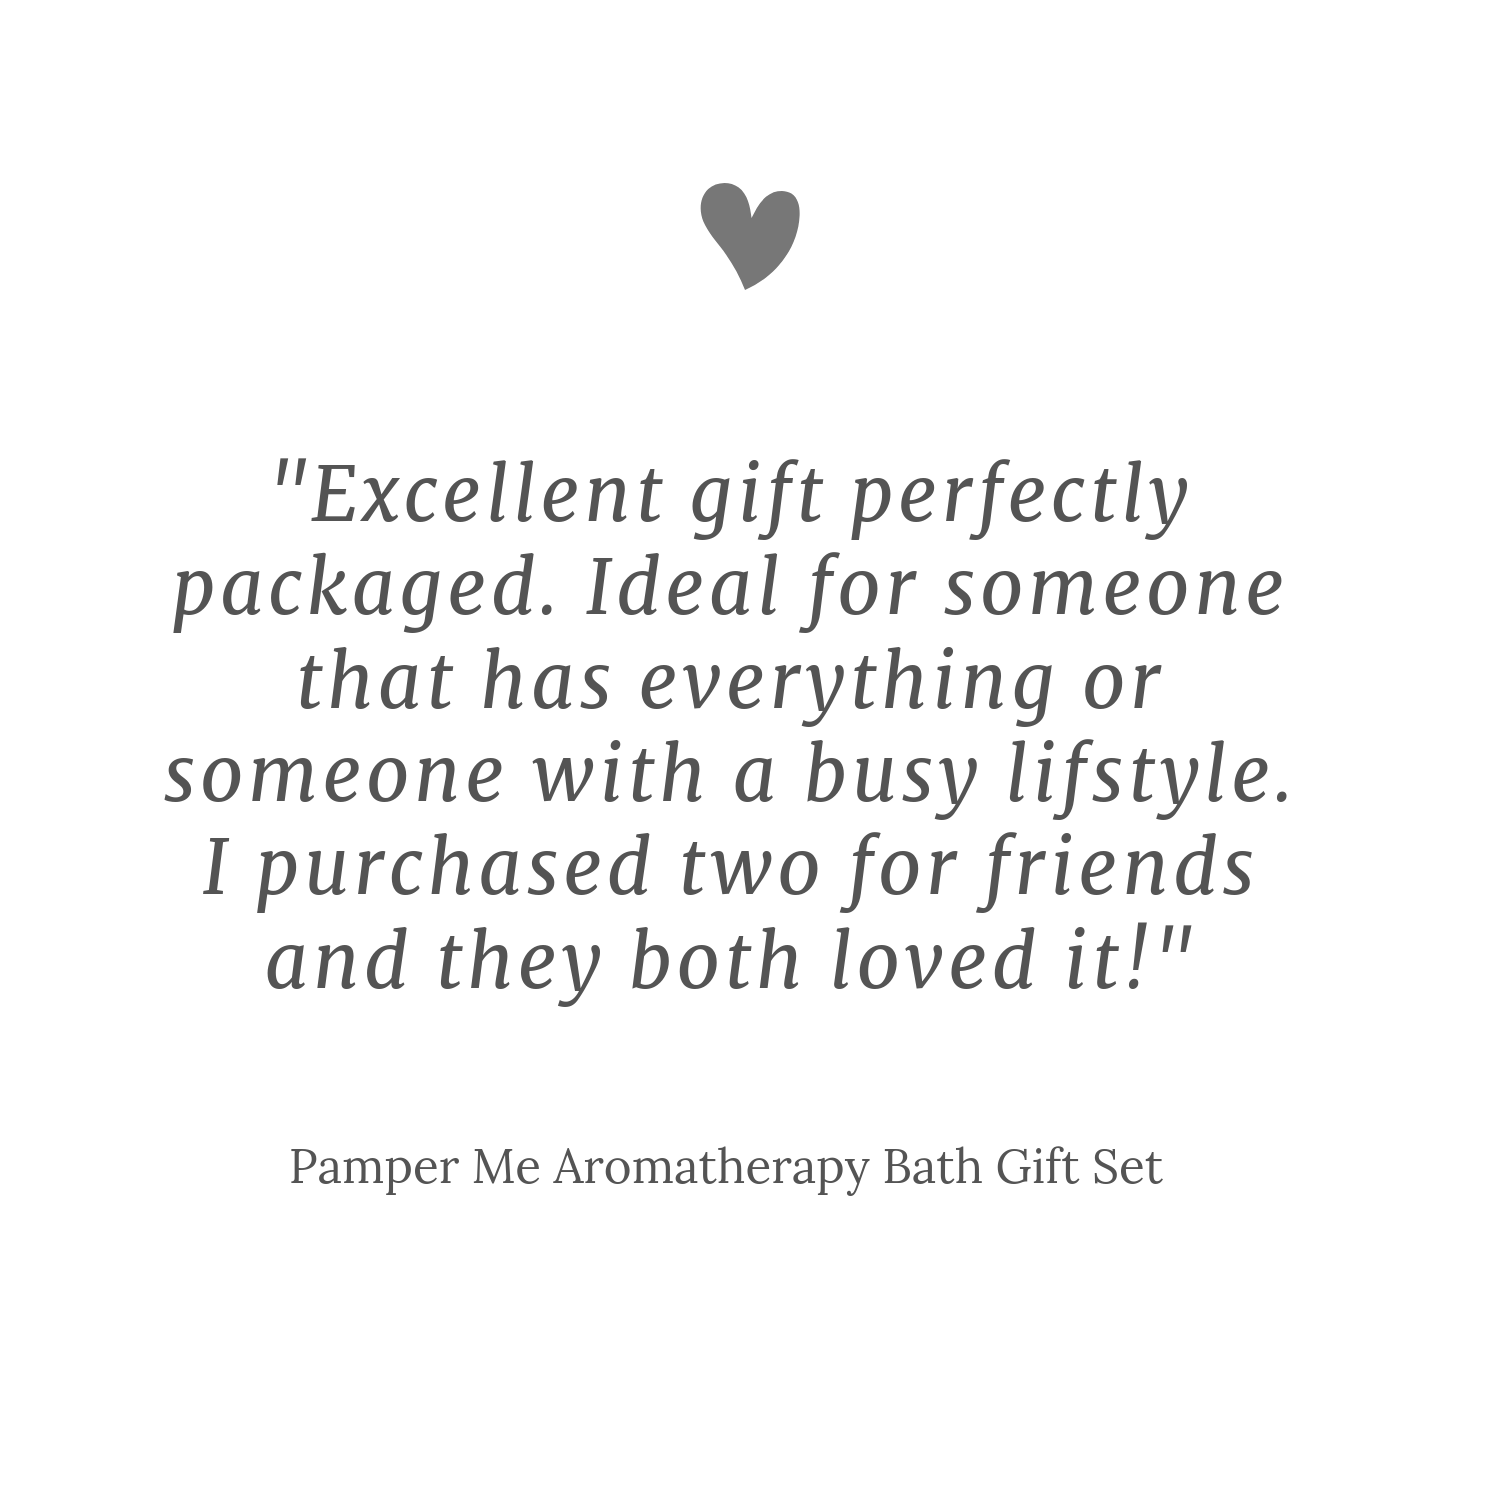 Pamper Me aromatherapy bath gift, best selling gift set, vegan bath gift, cruelty free